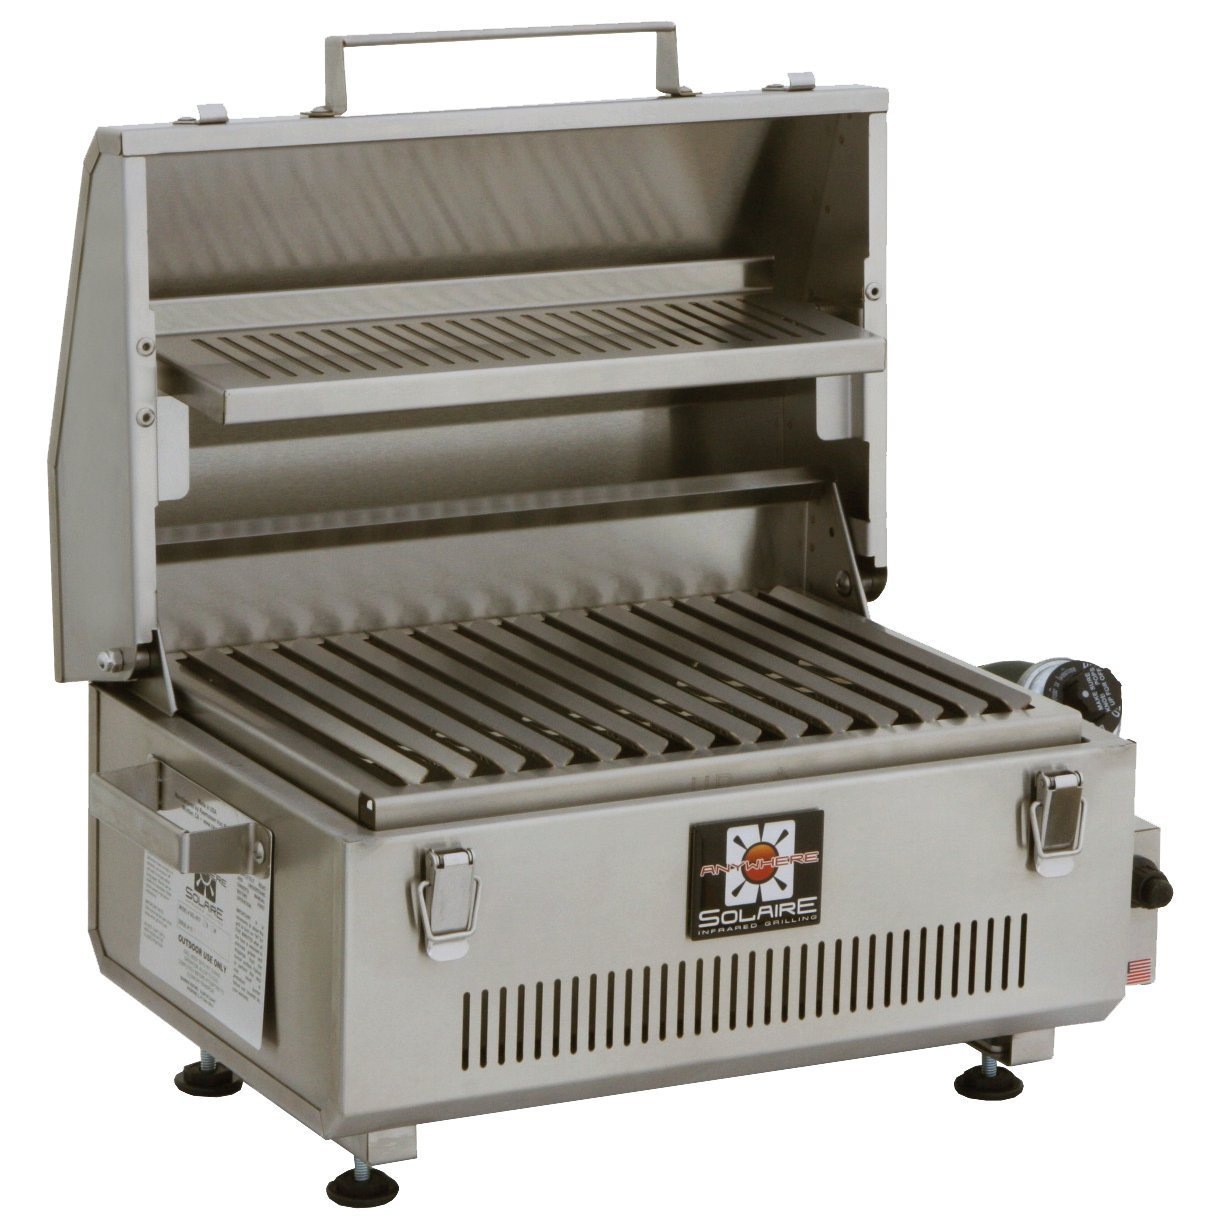 Solaire SOL-IR17BWR Portable Infrared Propane Gas Grill Review